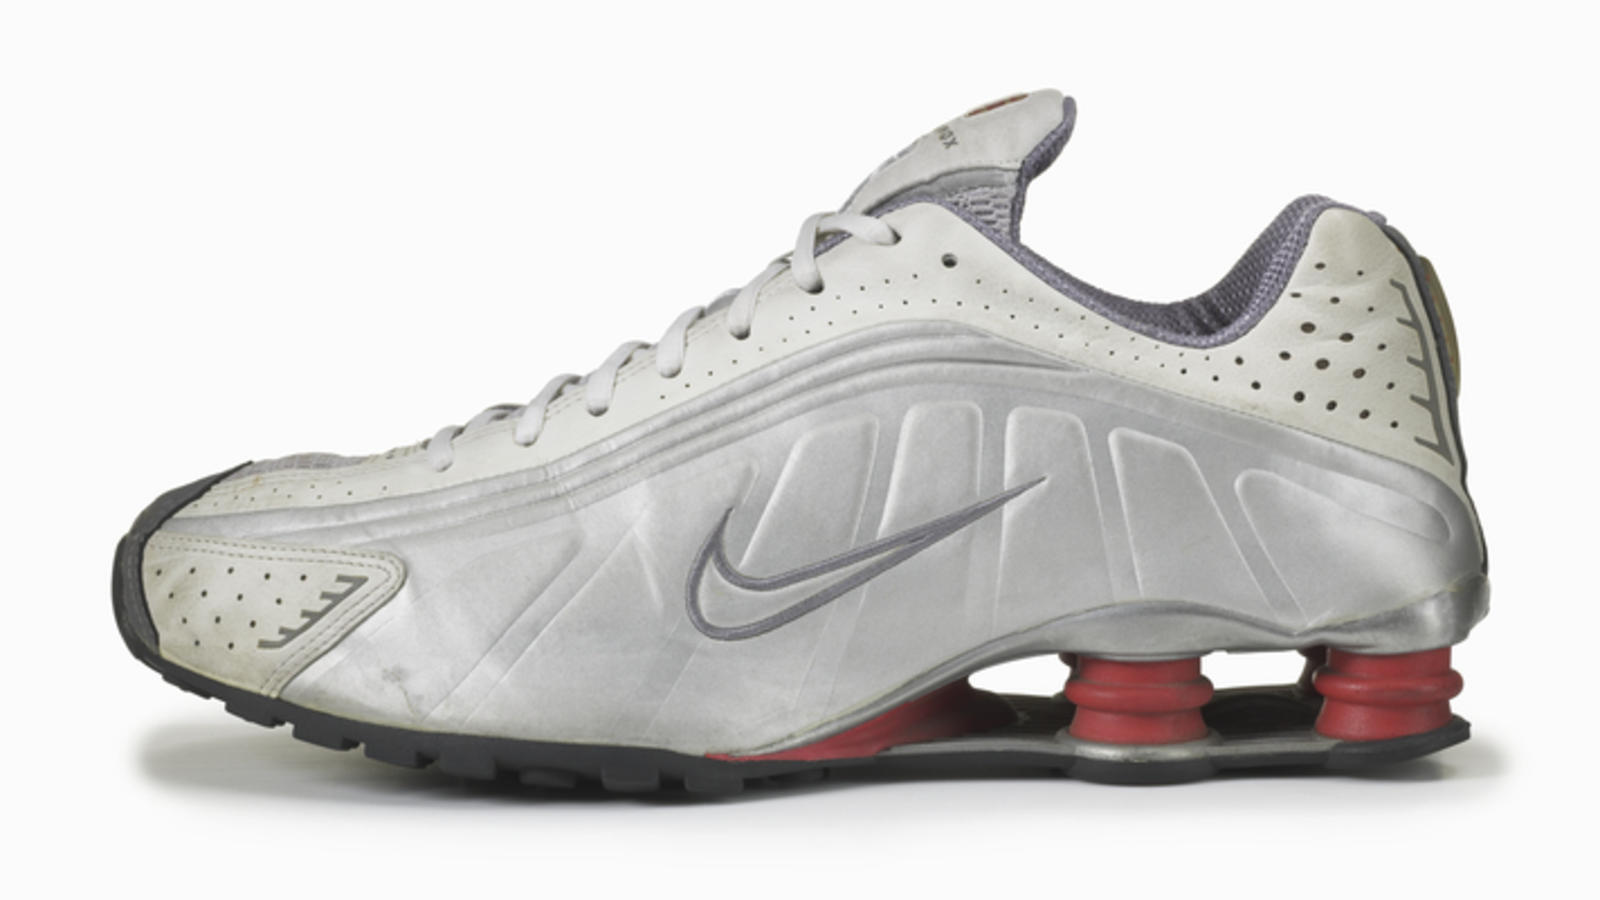 Nike Shox   Nike Sneakers Online at Best Prices  38e6ade46